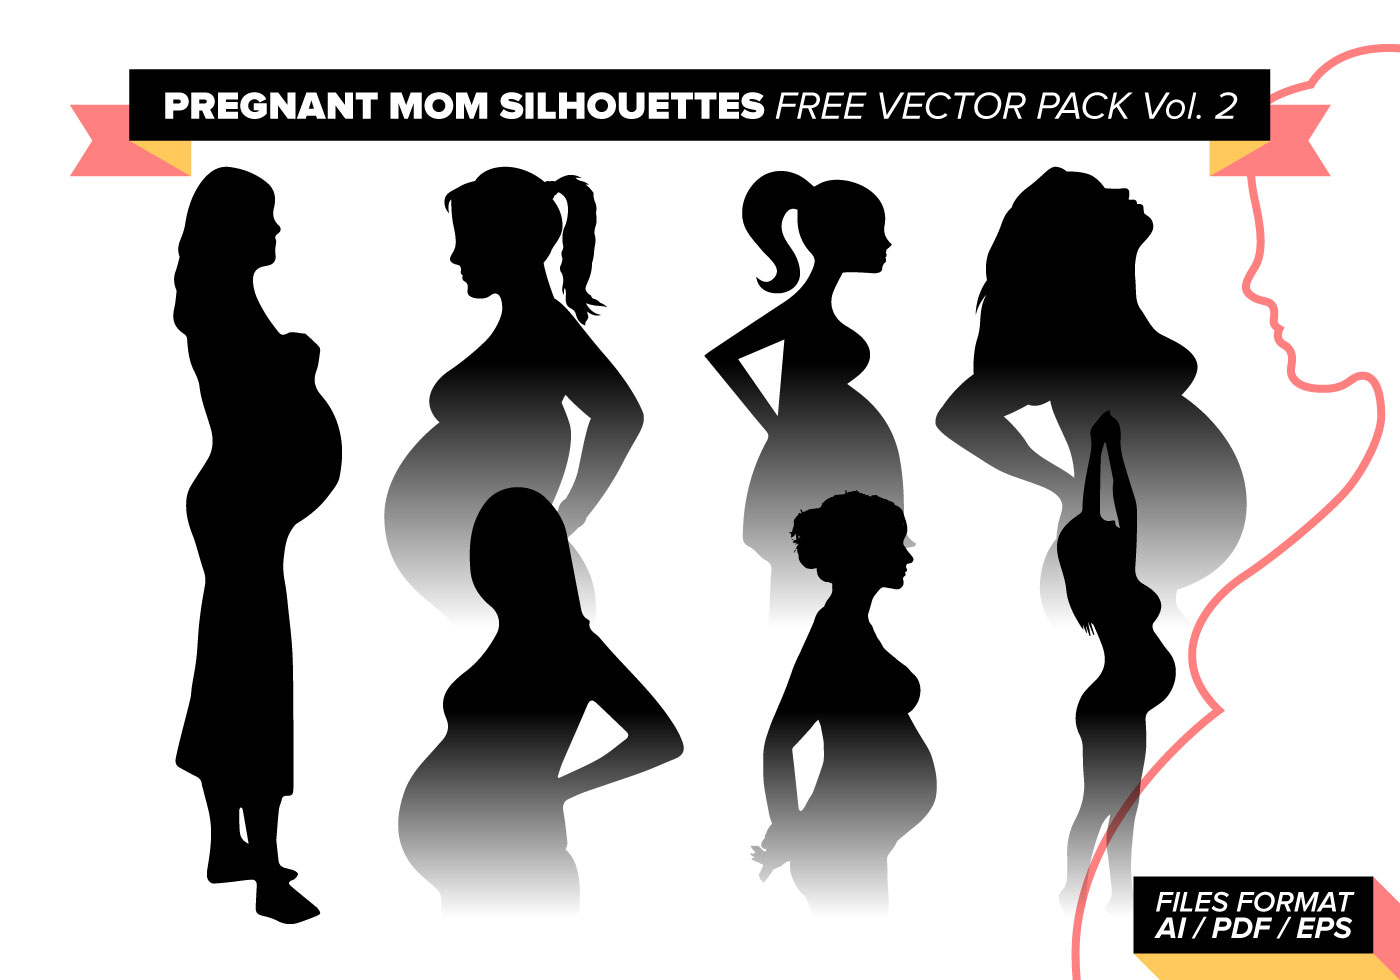 Pregnancy Svg Mommy Svg Baby Svg Pregnant Svg Mommy To Be: Pregnant Mom Silhouettes Free Vector Pack Vol. 2